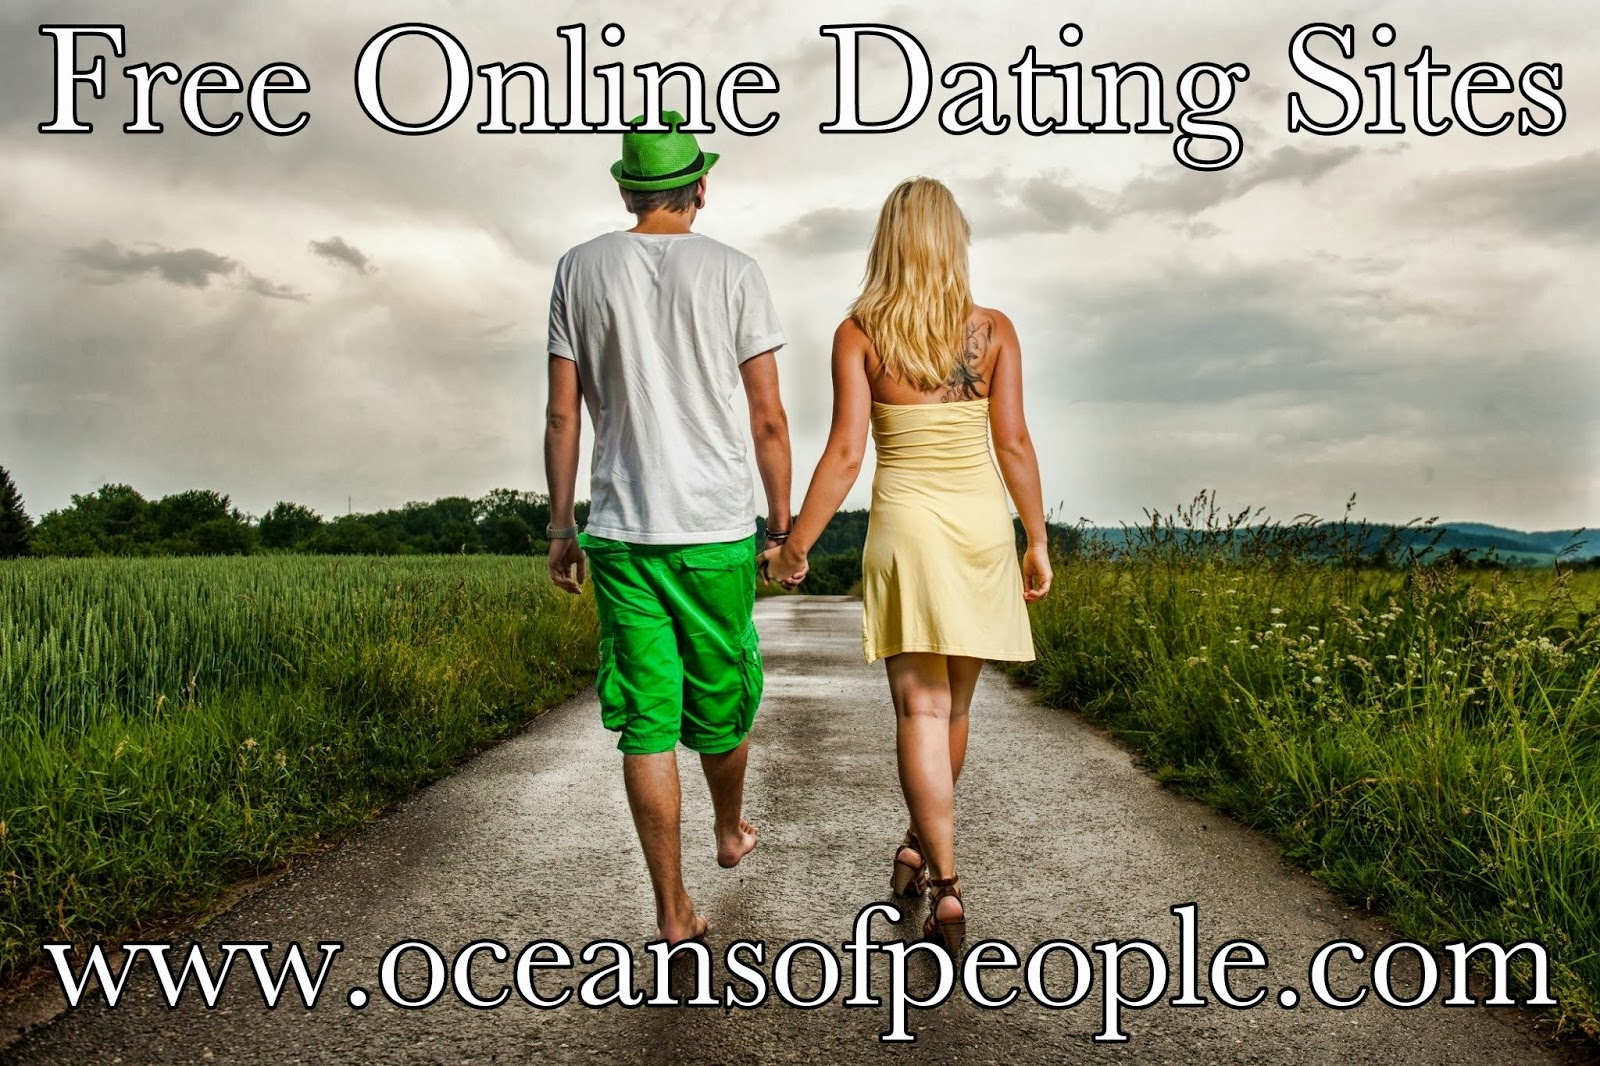 100% free online dating in dennysville Online dating should be easy sign up for free today and start chatting with some of the best singles near you in minutes happiness meets here.